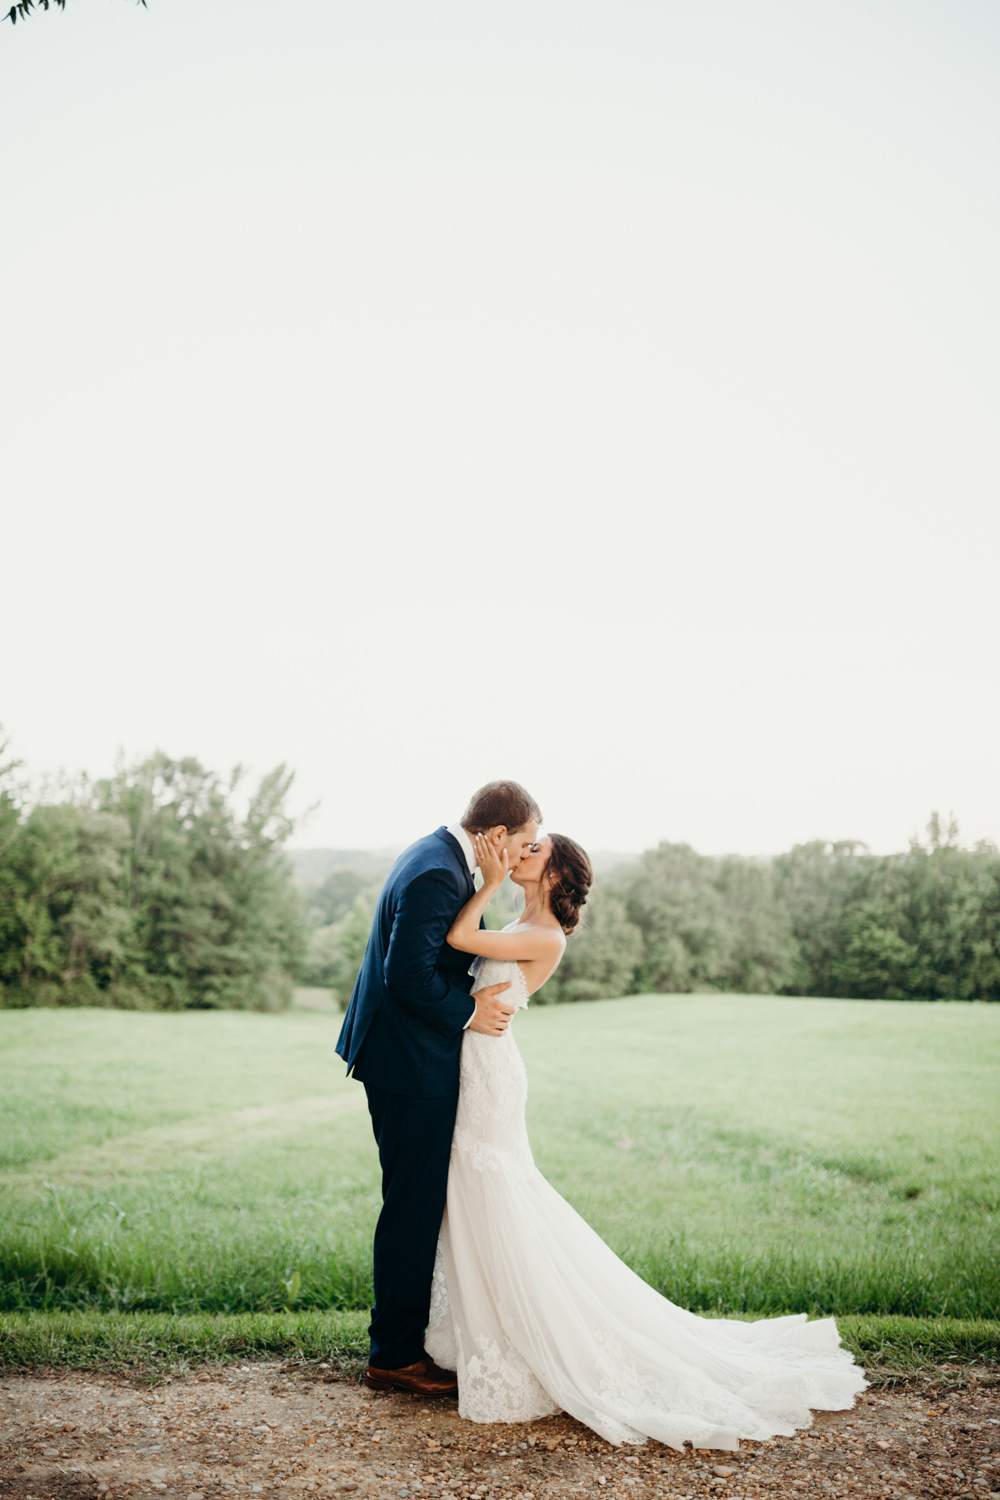 sweetmeadowfarmwedding-2089.jpg